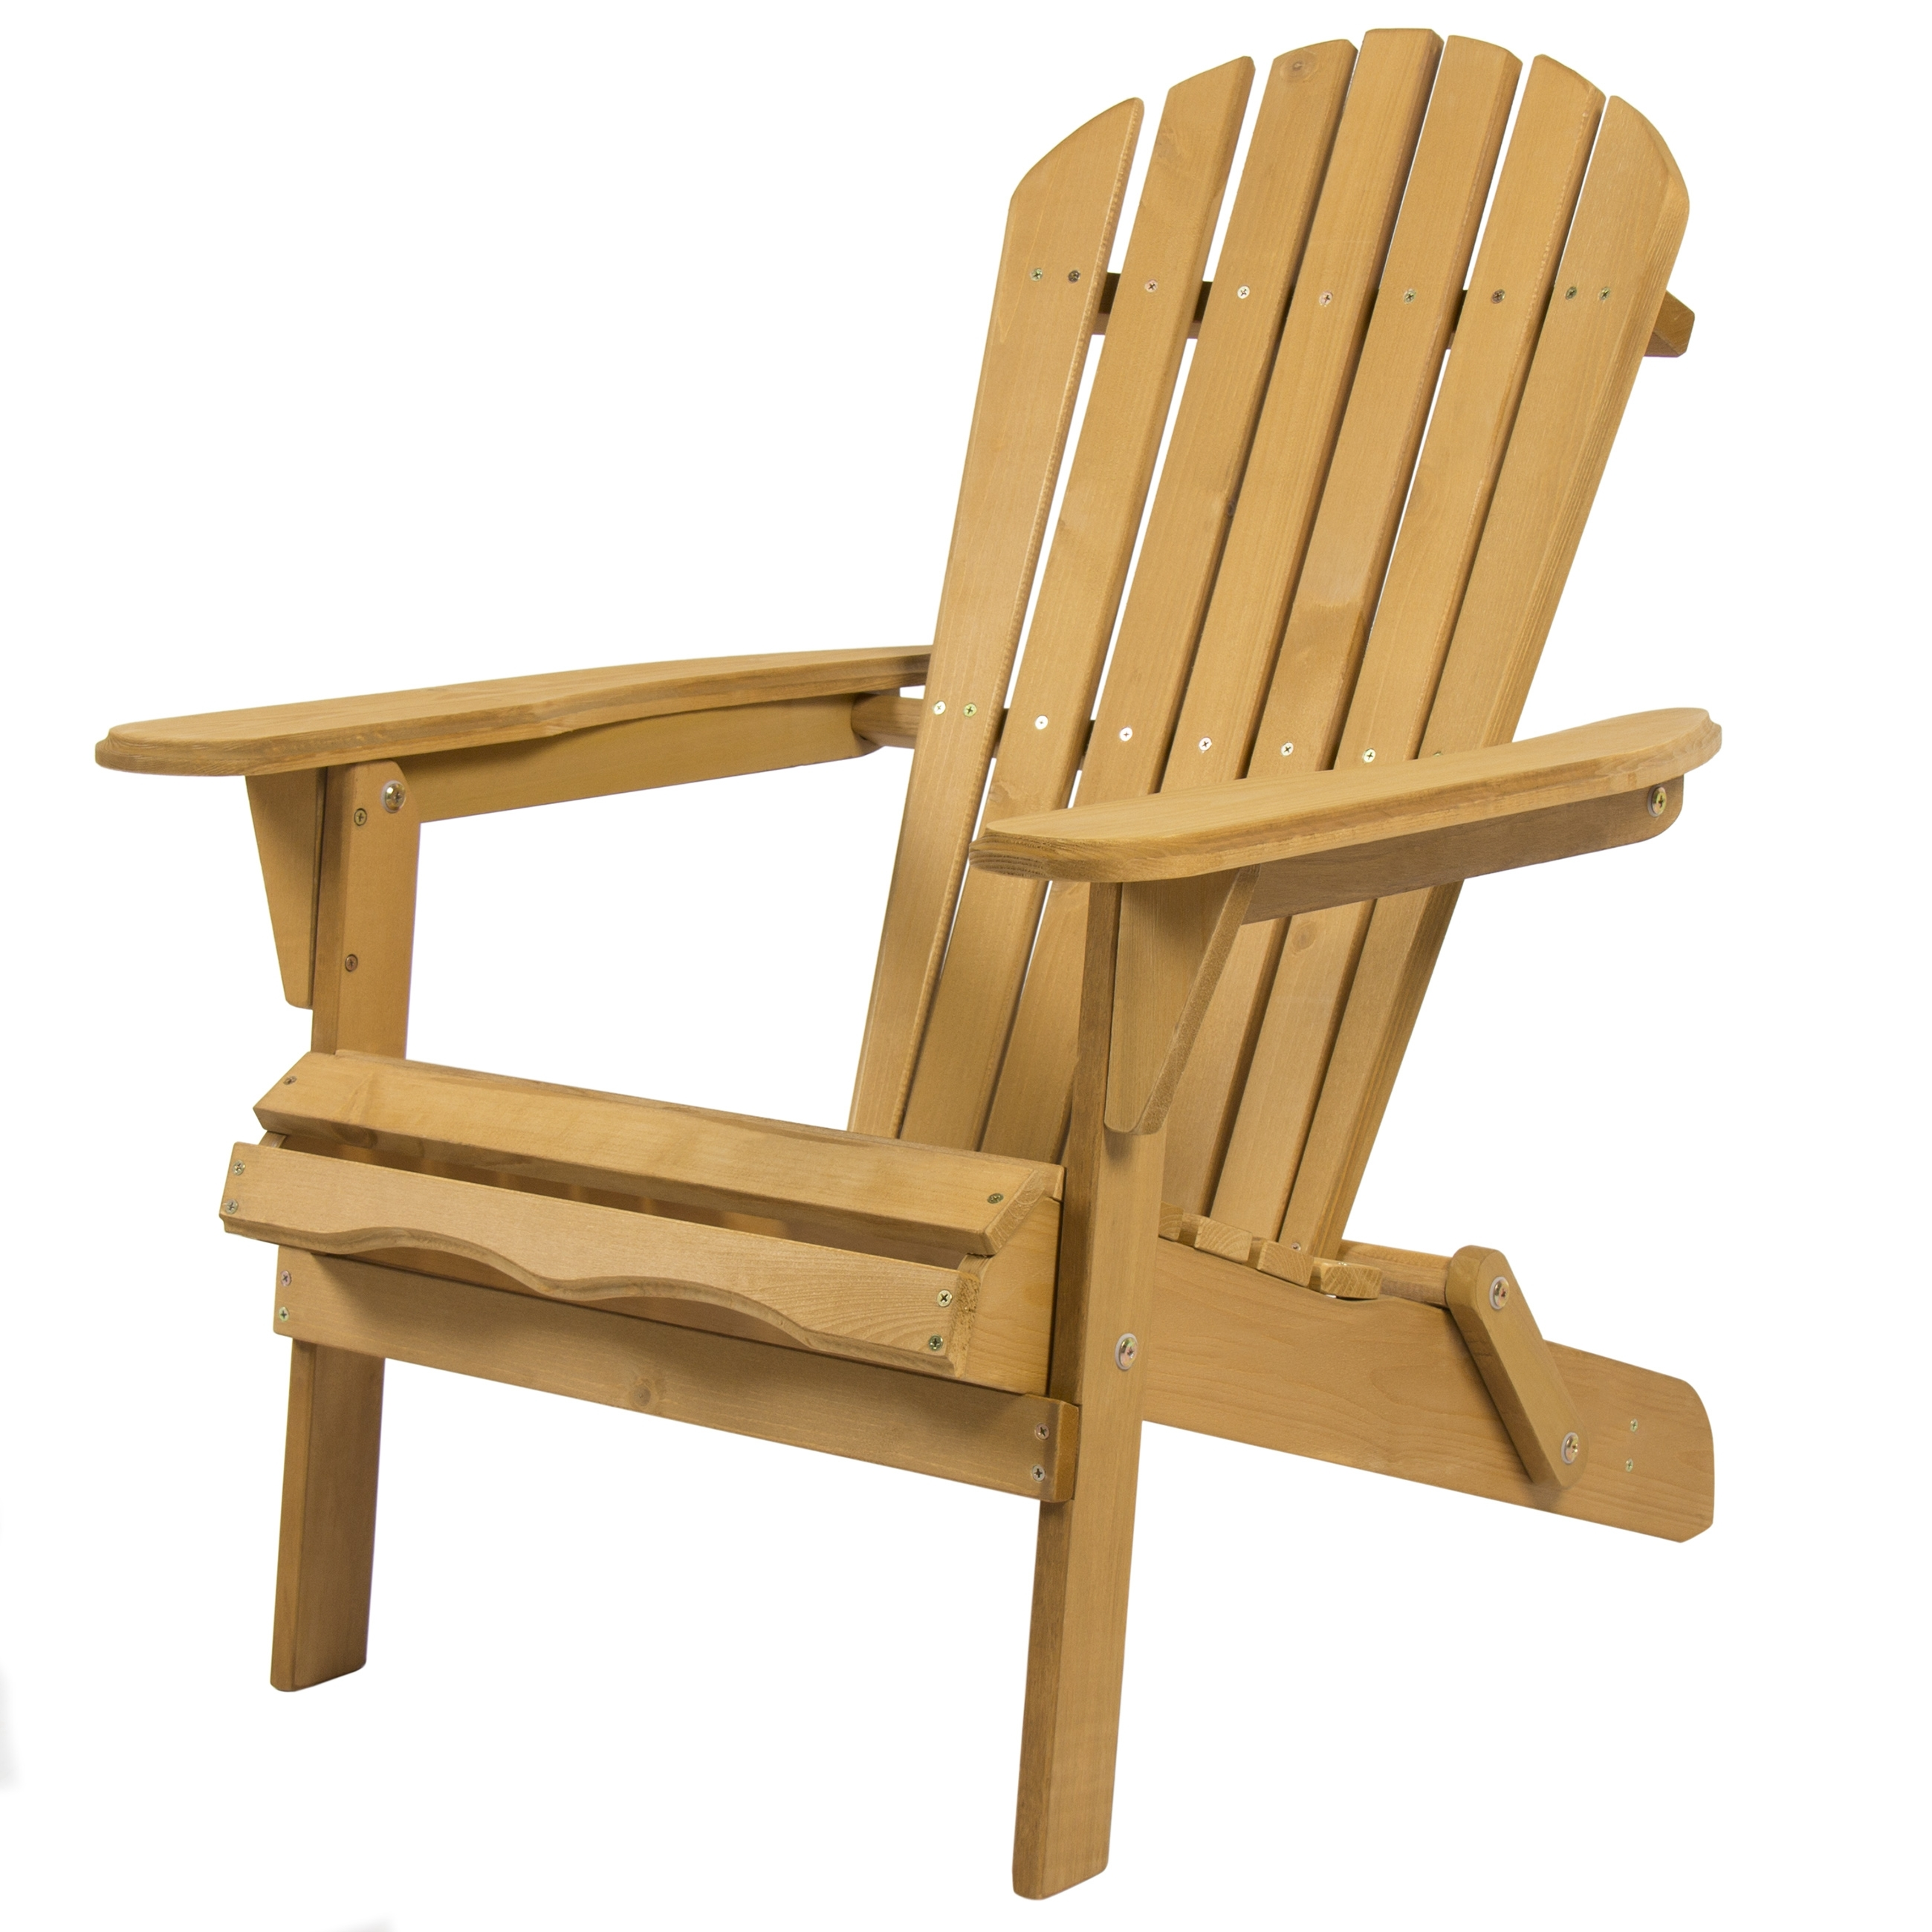 Exquisite Outdoor Wood Adirondack Chair Foldable Patio Lawn Deck Pertaining To Best And Newest Children's Outdoor Chaise Lounge Chairs (View 6 of 15)